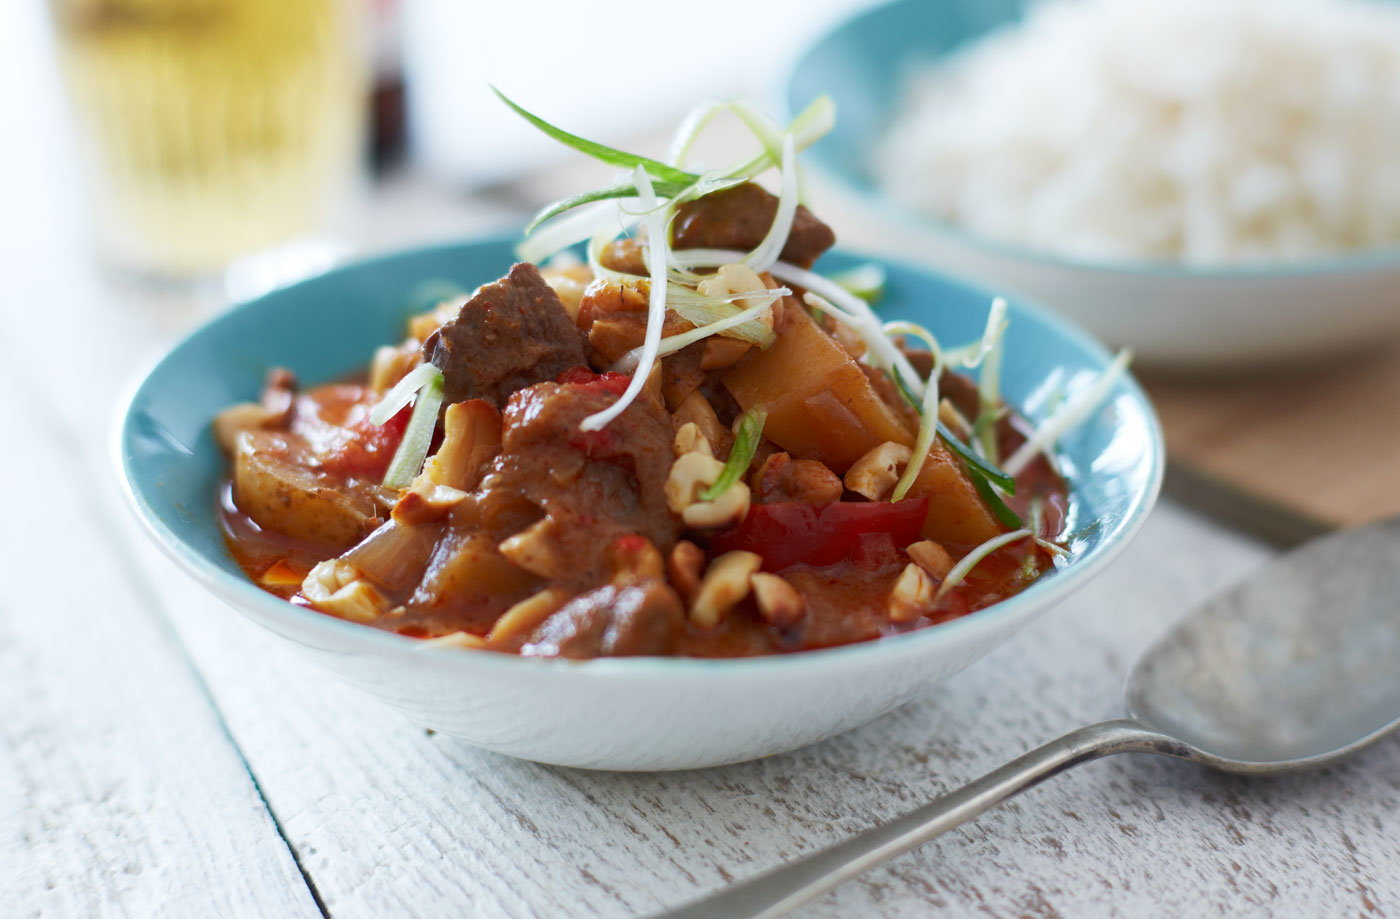 Slow cook Thai duck curry recipe